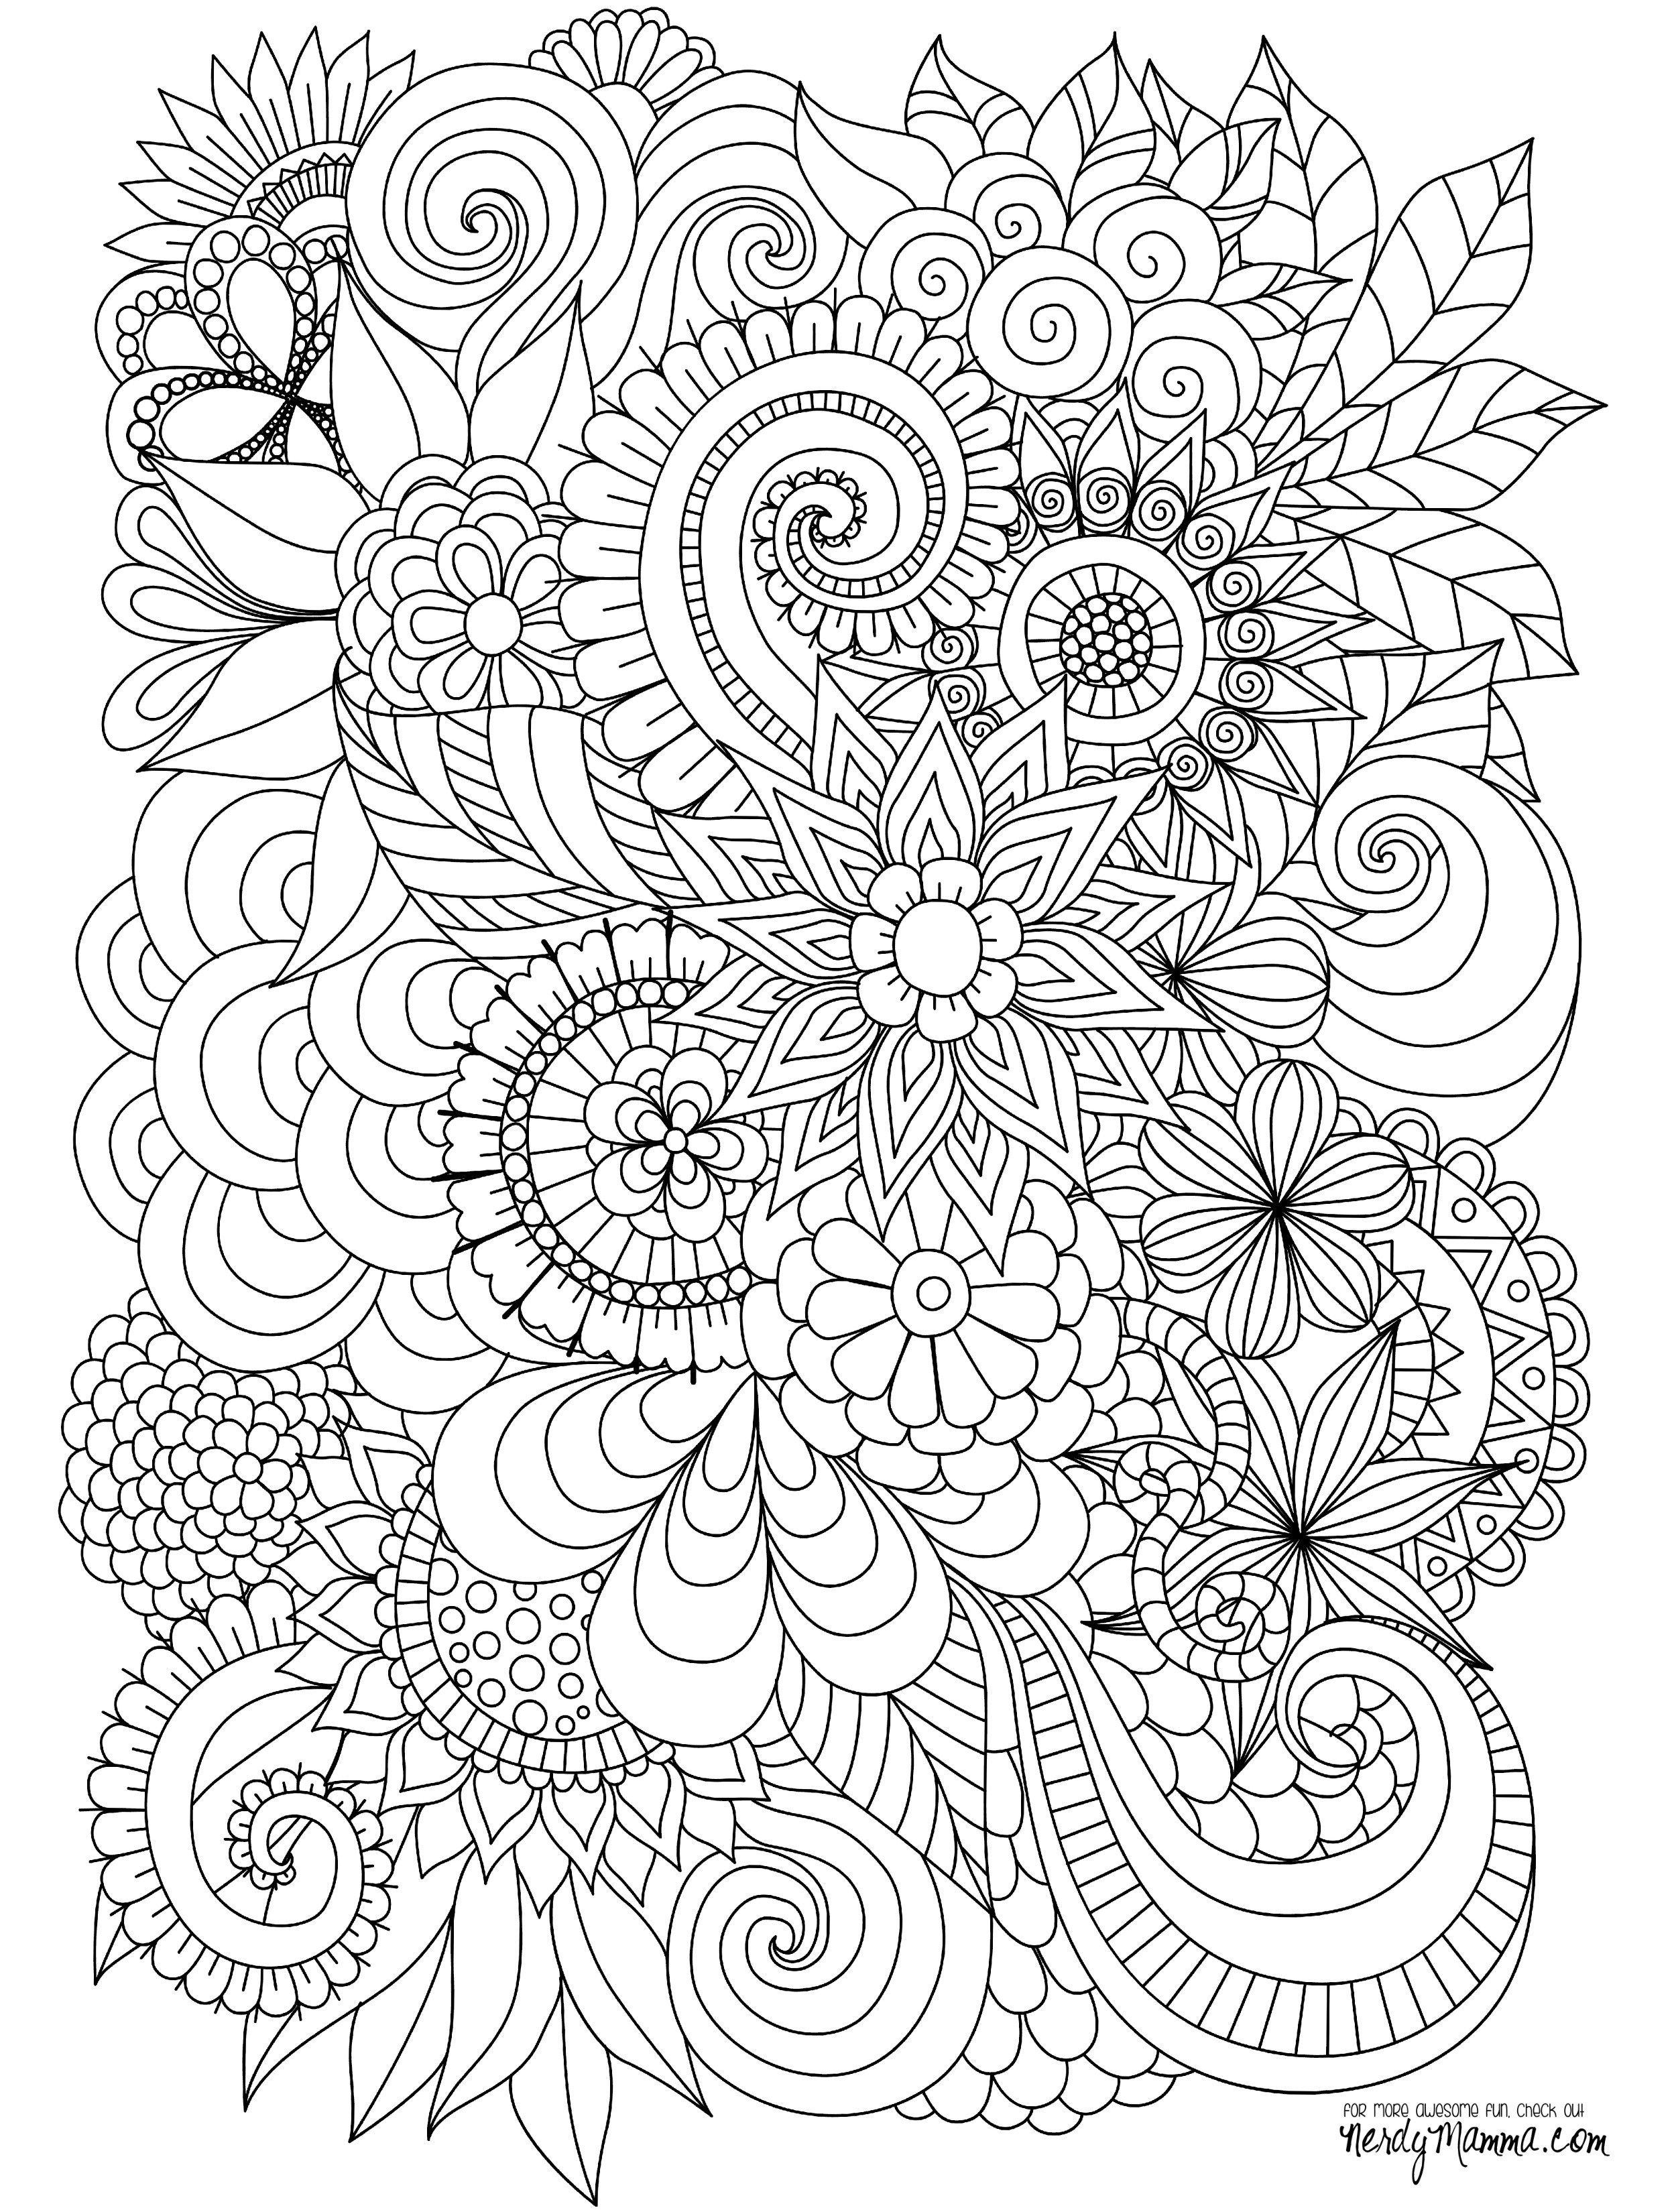 Make Your Own Coloring Pages From Photos Free  Collection 12o - Save it to your computer